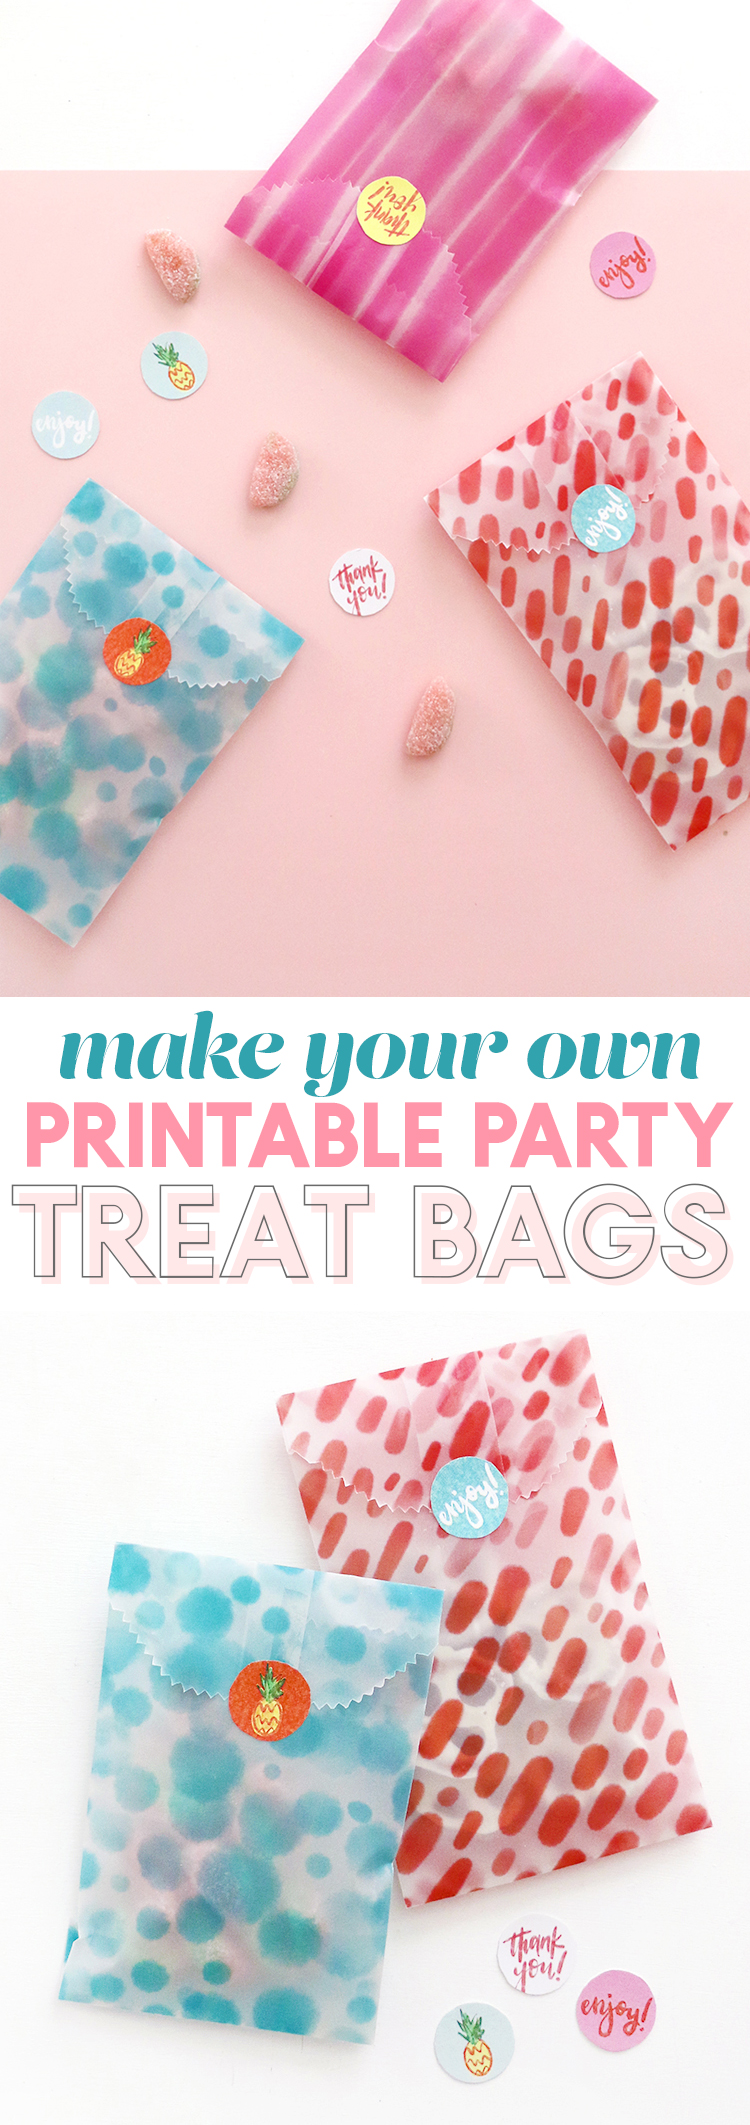 make your own goodie bags! diy printable treat bags - free paper and sticker downloads